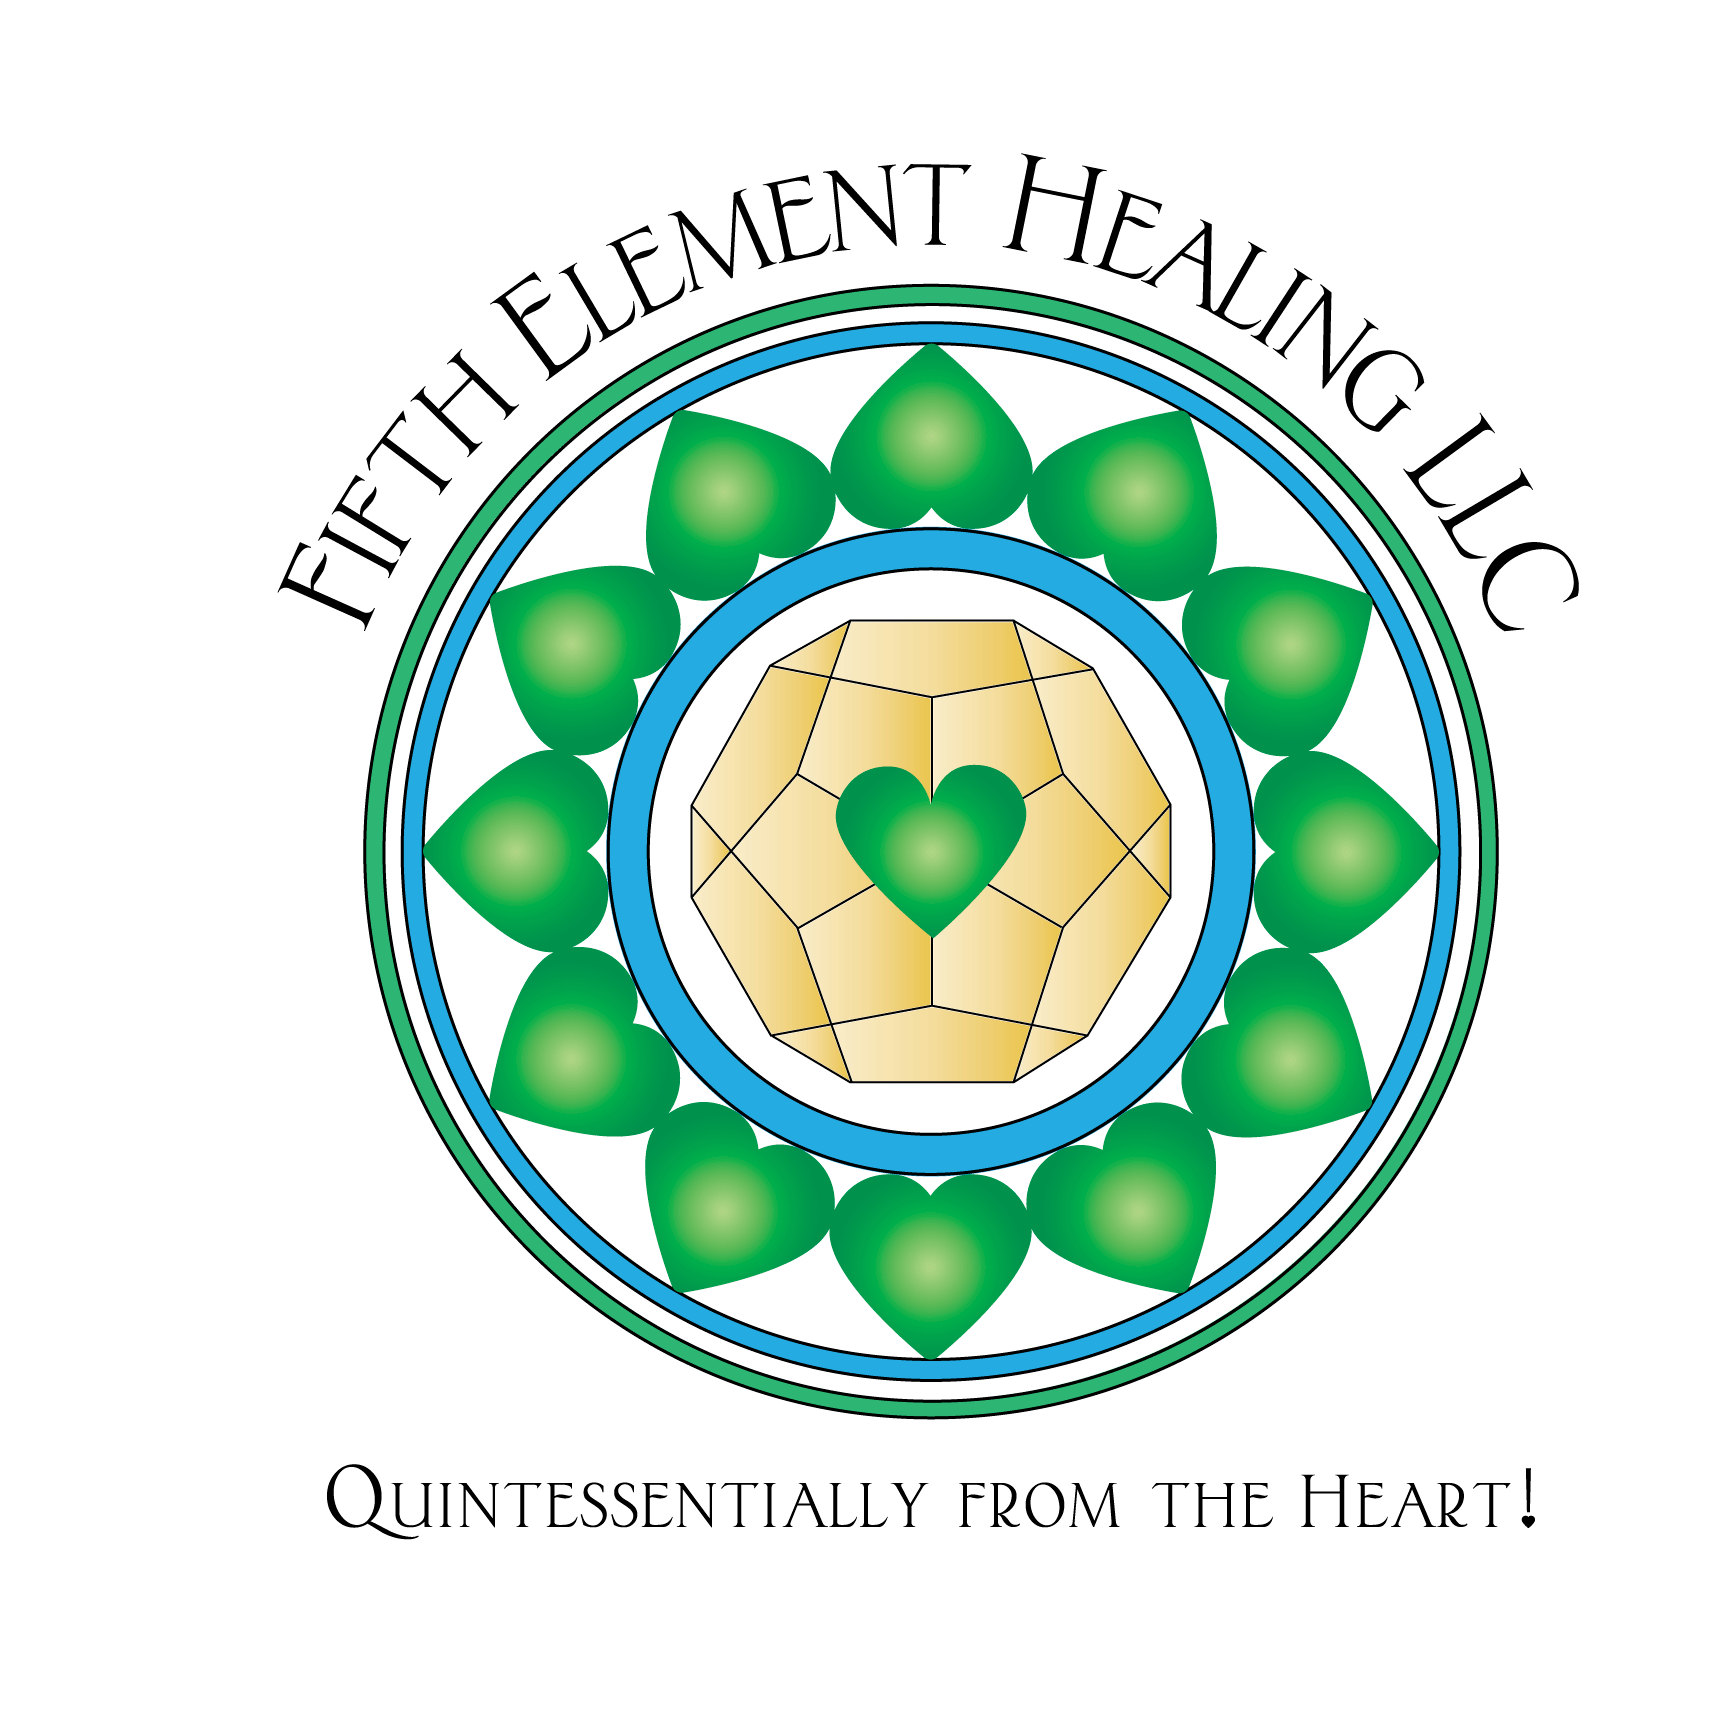 Fifth Element Healing LLC